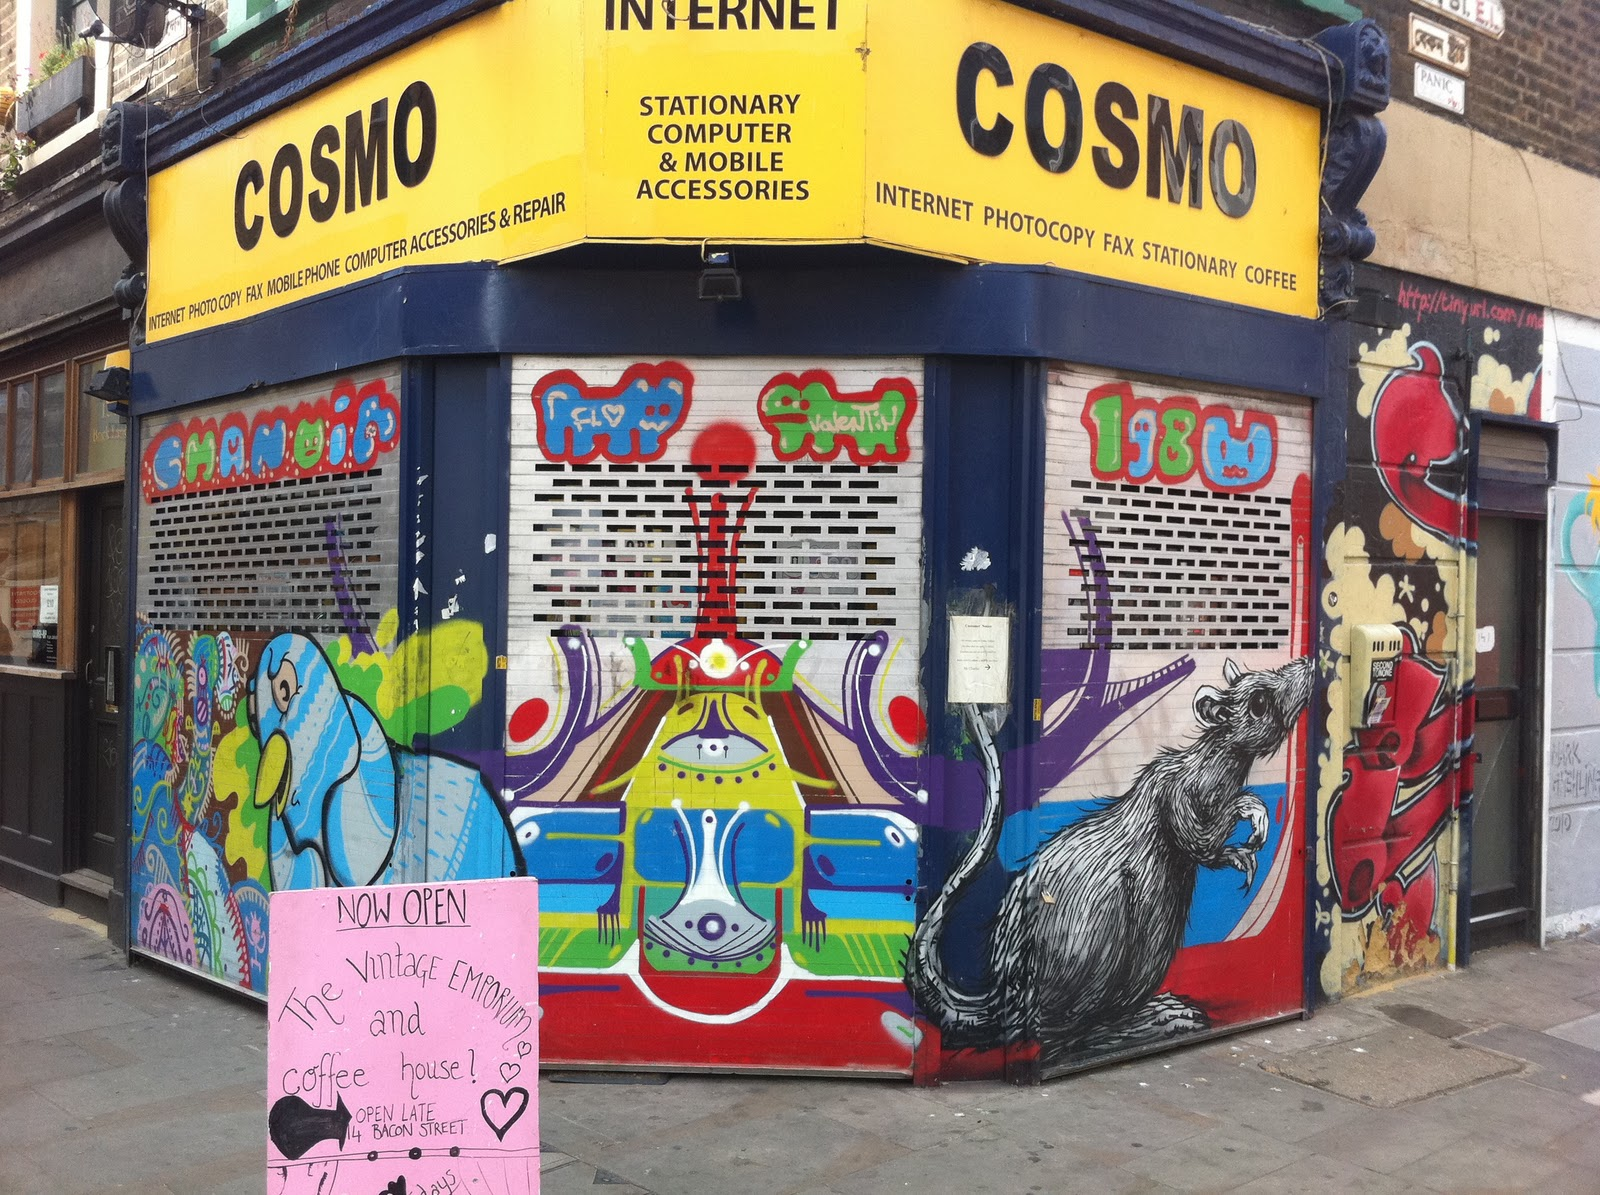 Cosmo Internet Cafe London